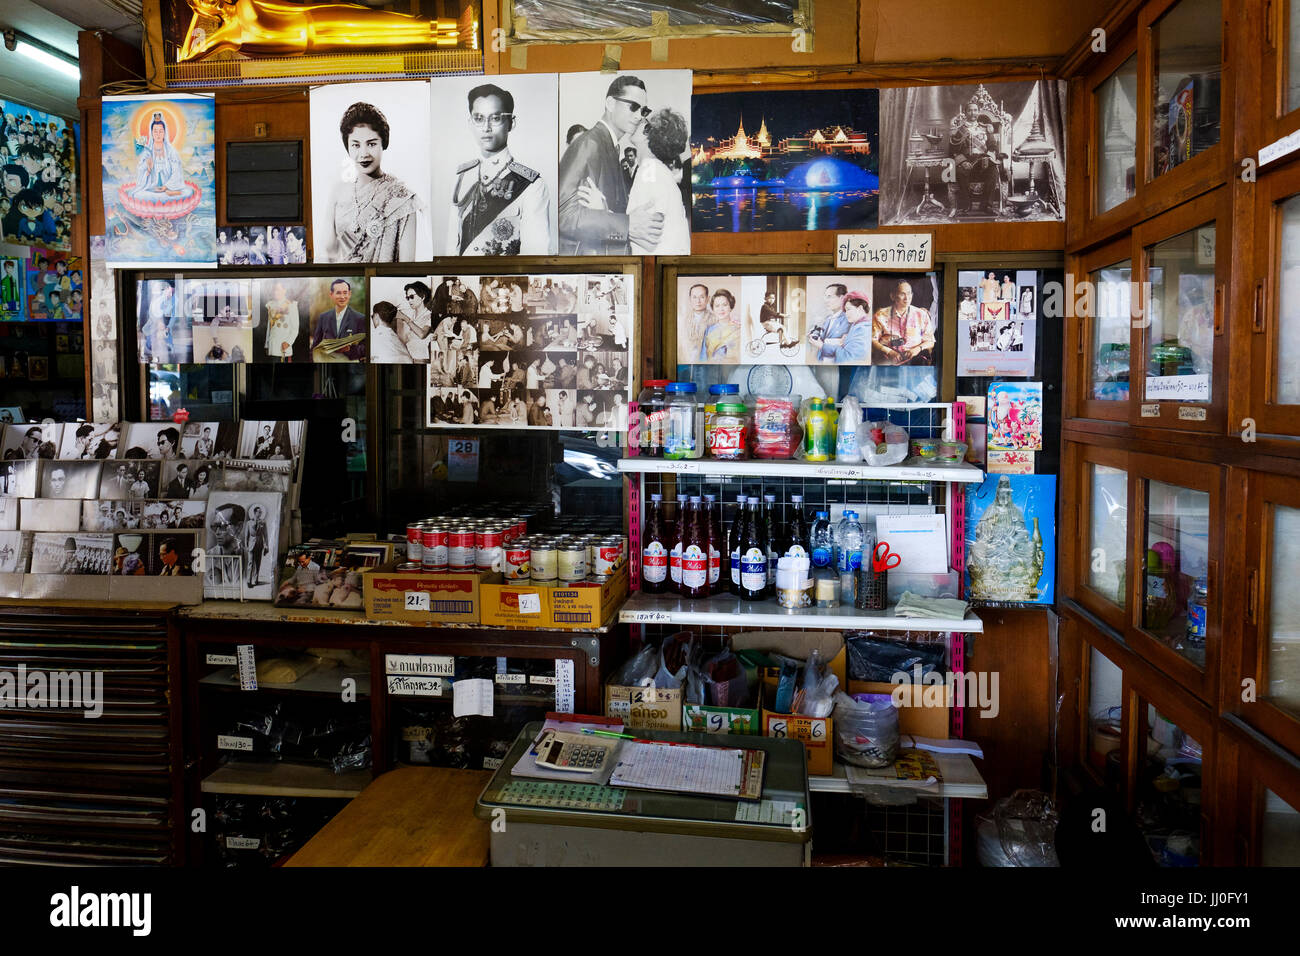 A small convenience store selling some food products along with imagery of the Thai Royal Family, Phra Nakhon District, - Stock Image